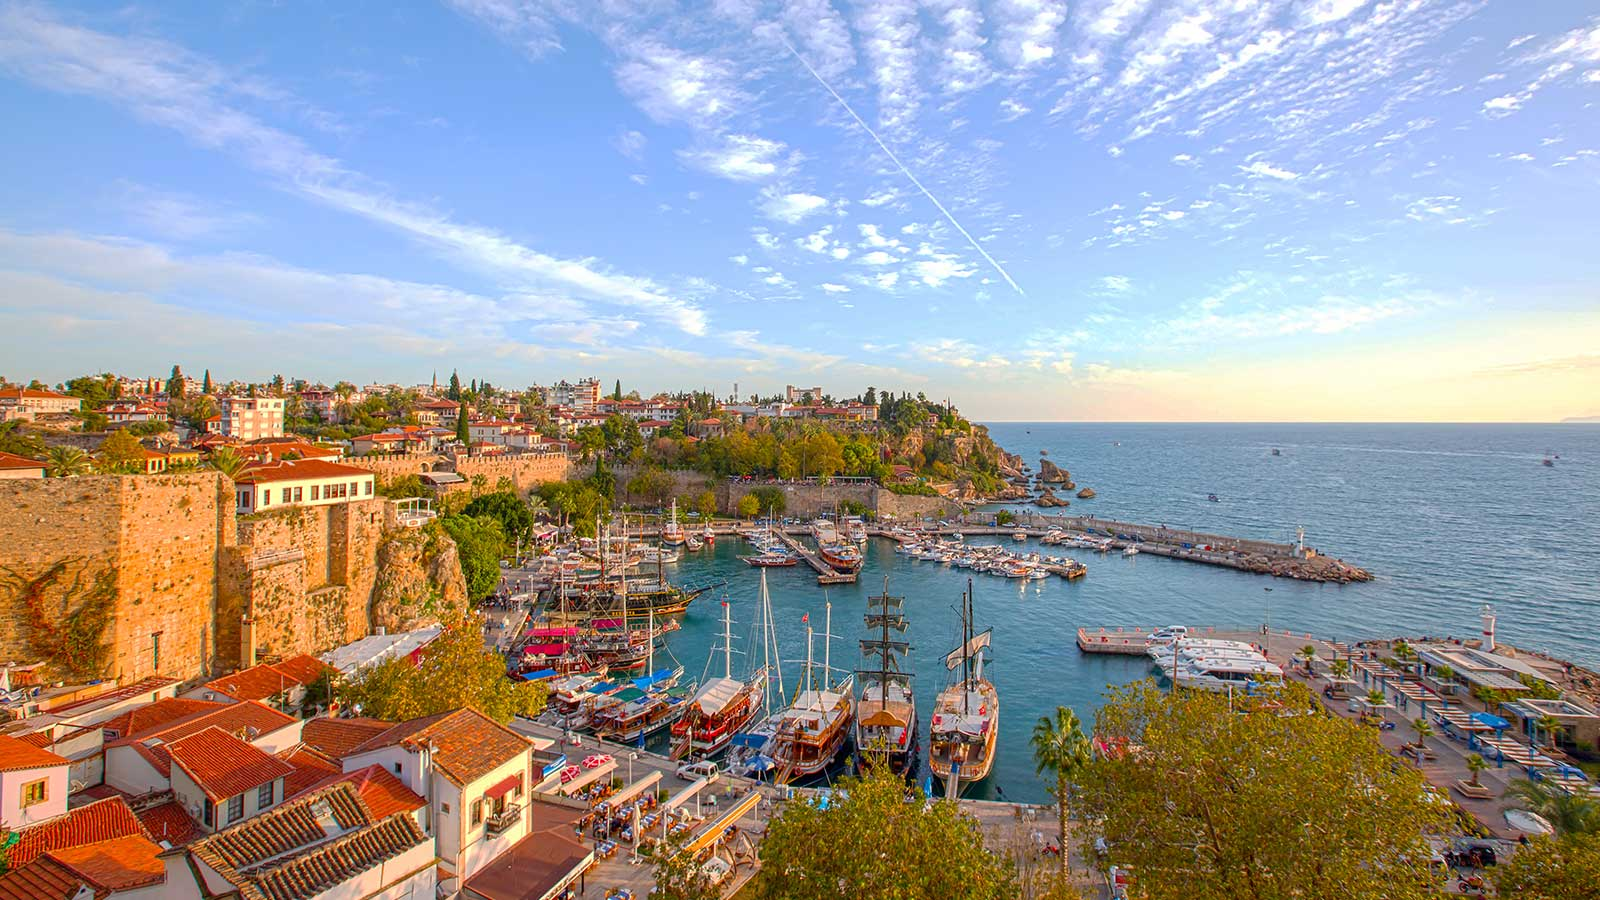 10 Unforgettable Things to Do in Antalya Turkey